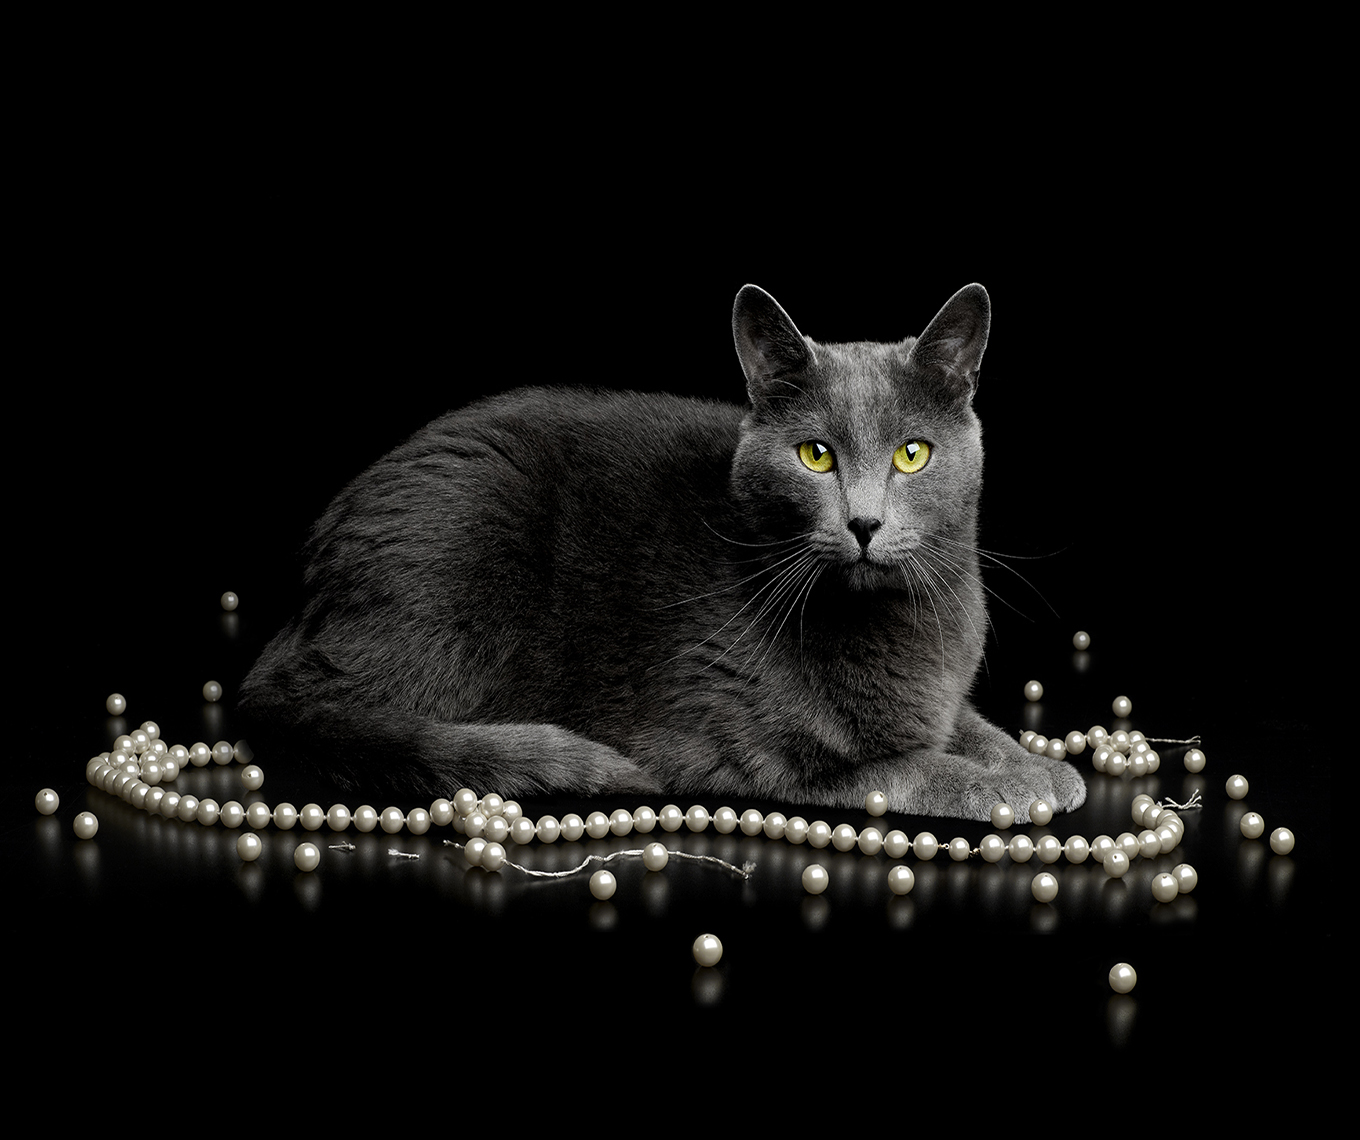 Cat w Pearl Necklace copy